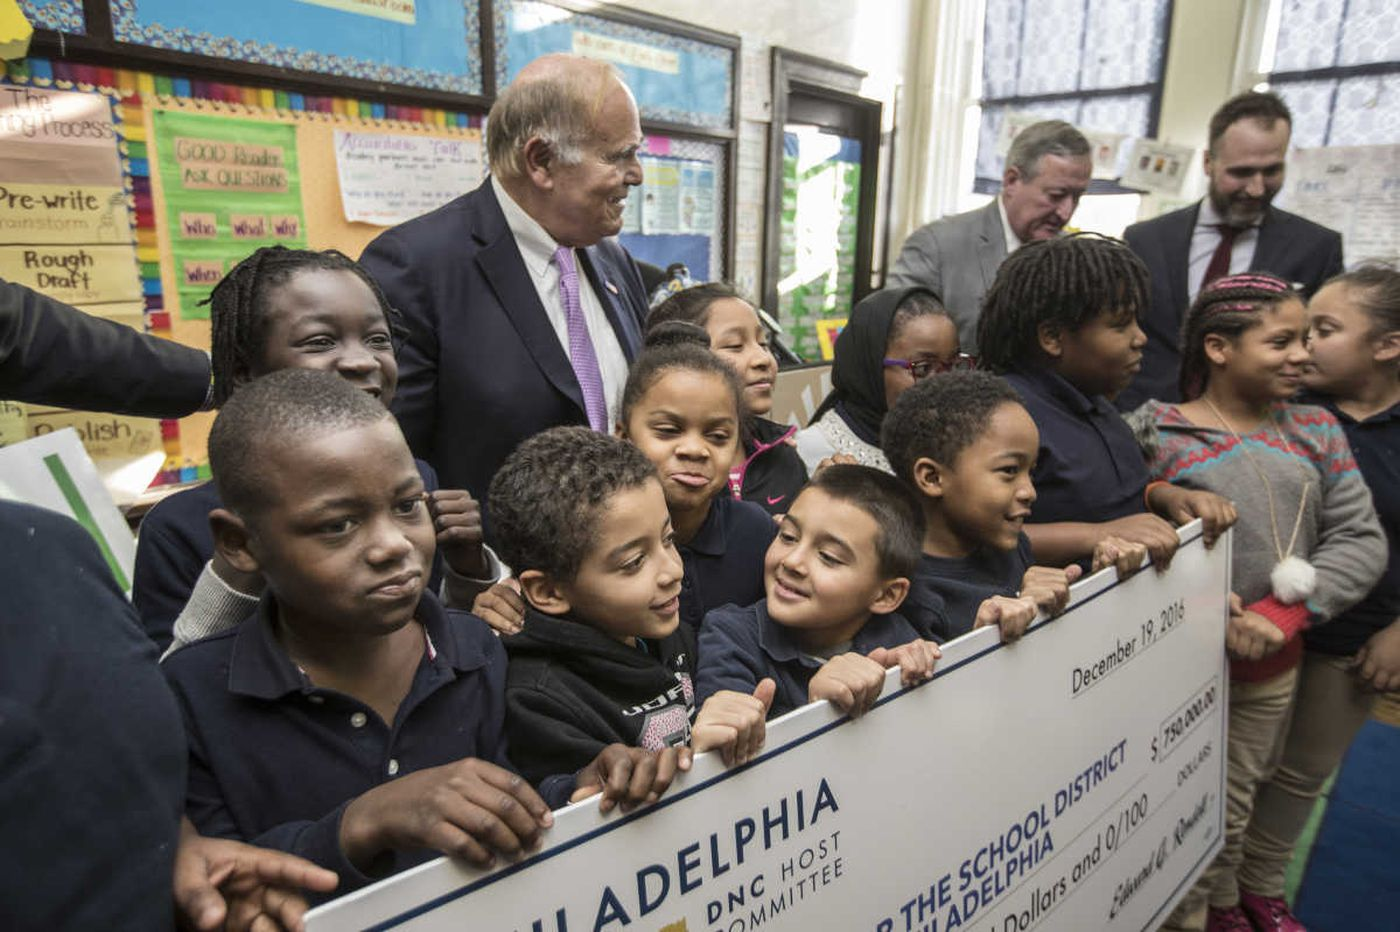 80,000 new books for Philly schools